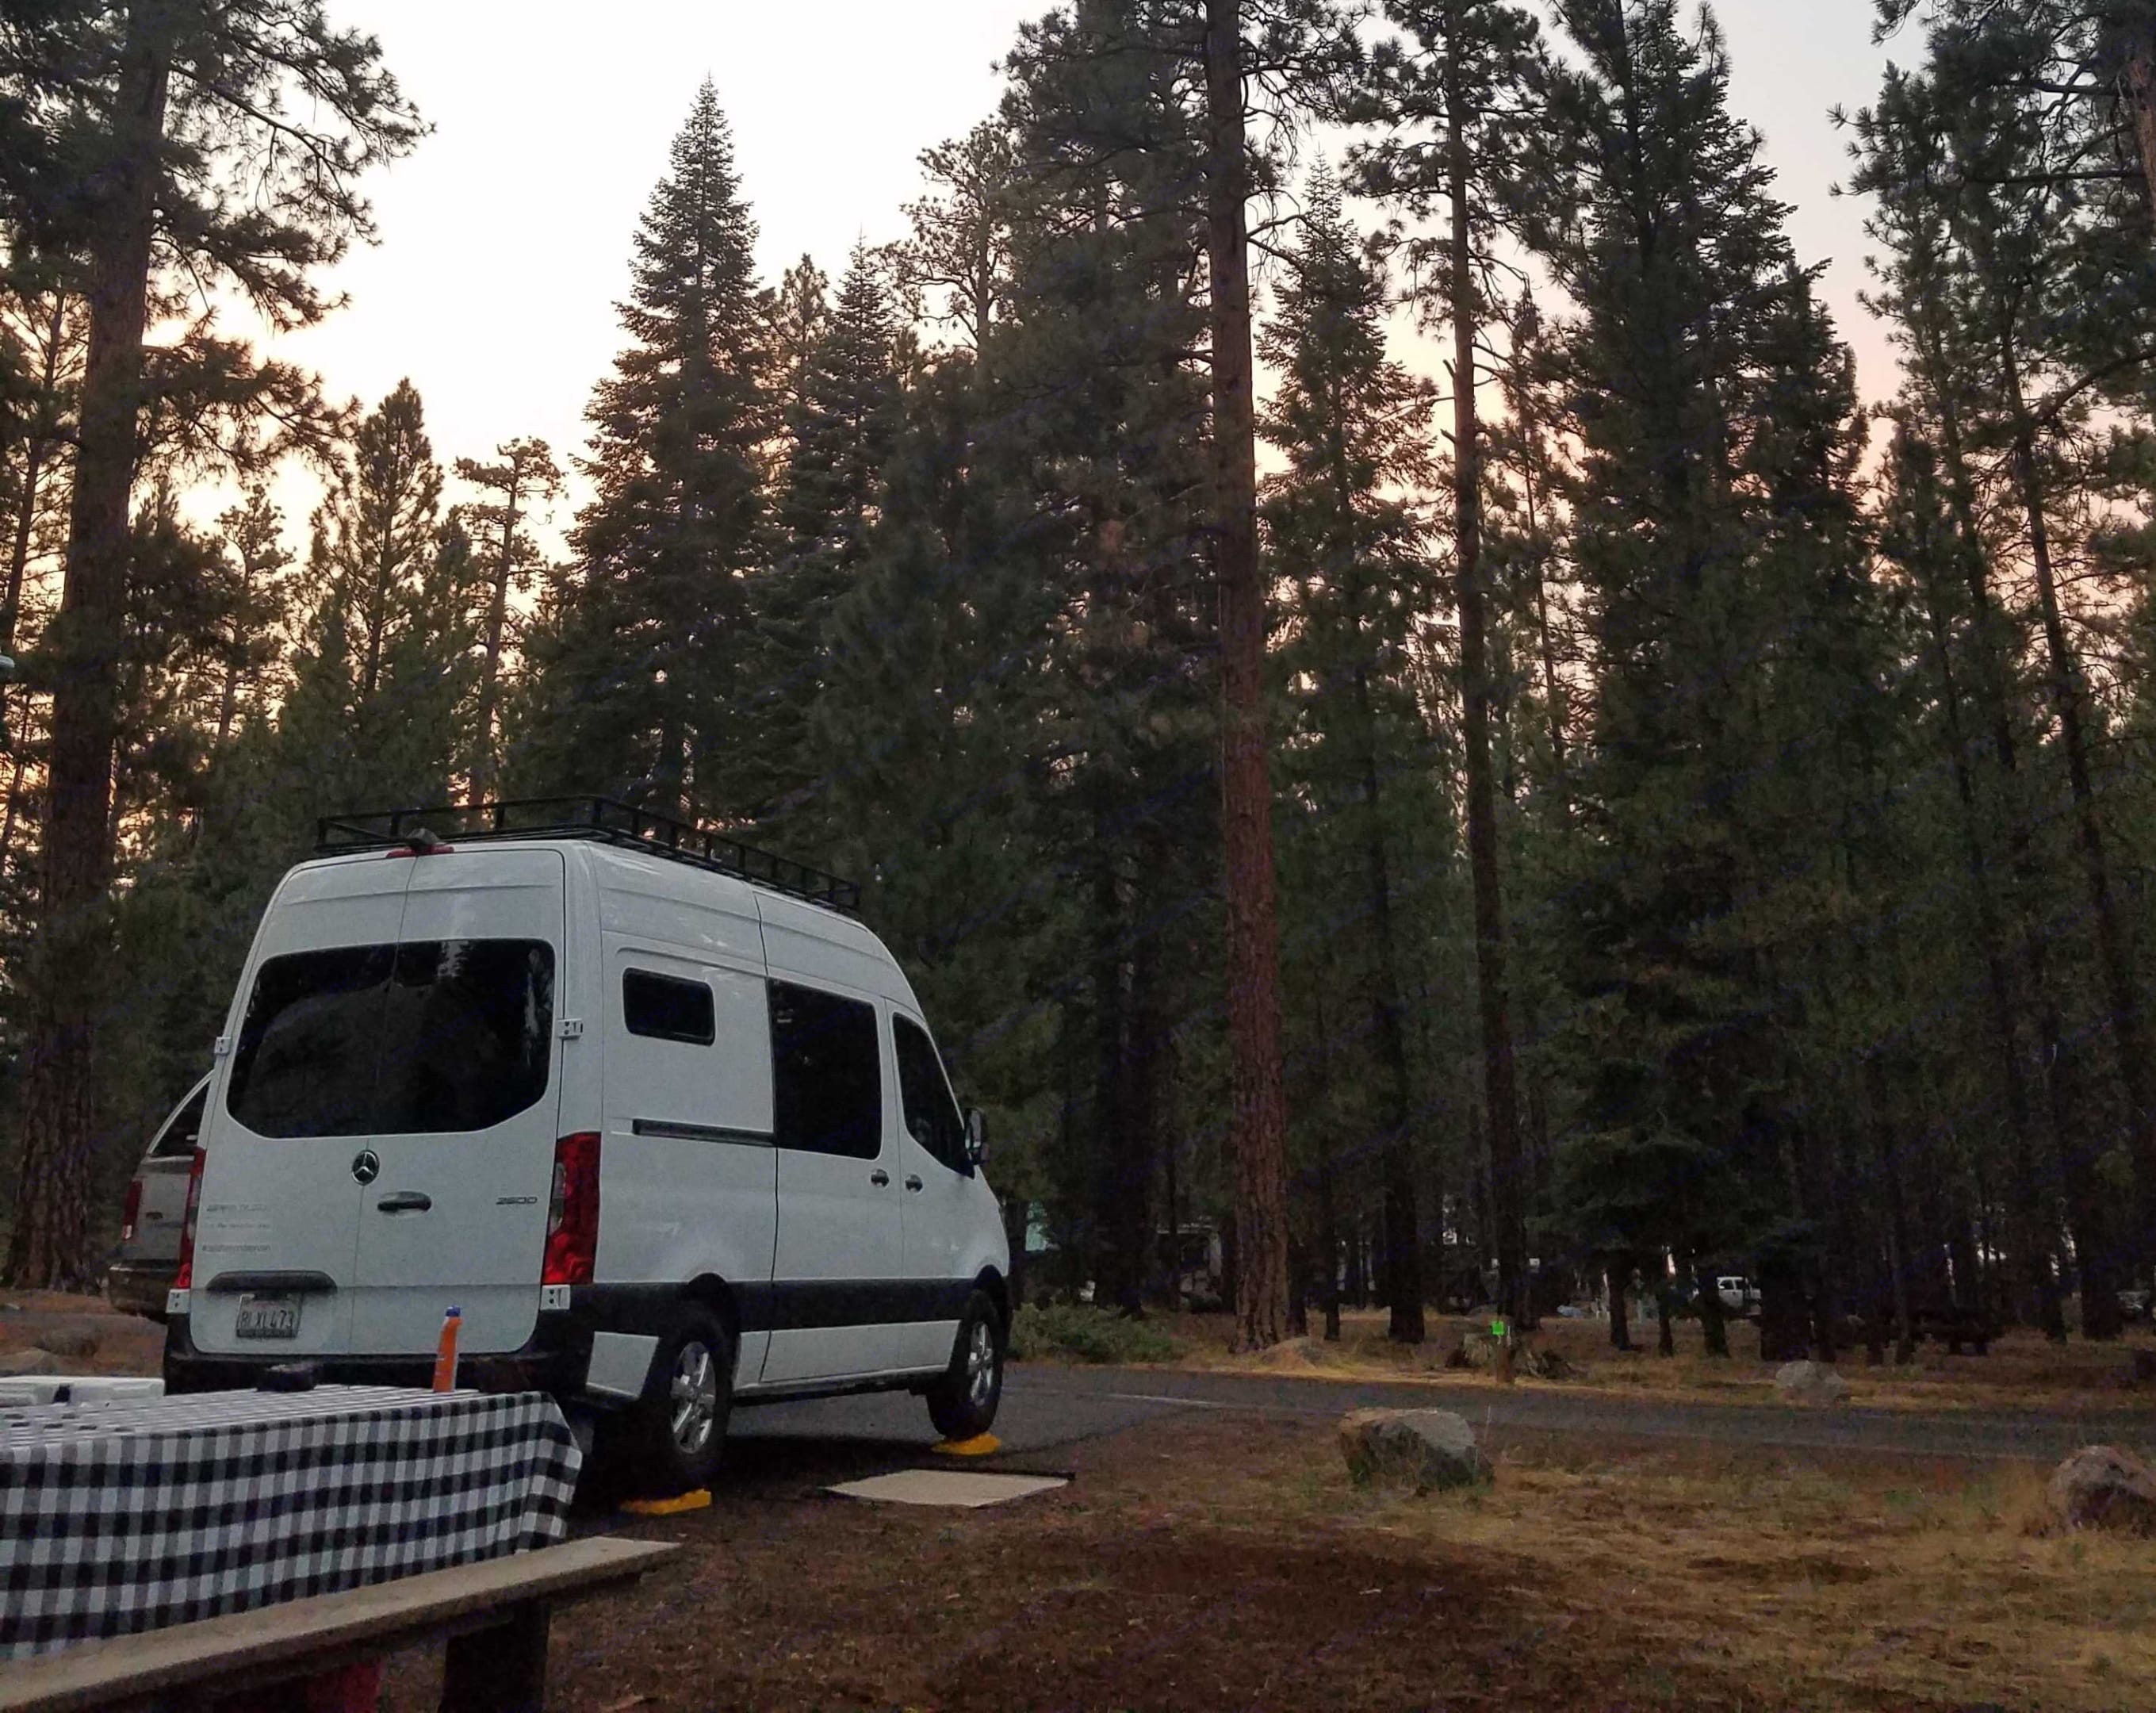 Merrill campground,  Eagle Lake, CA. Mercedes Sprinter 144 High Roof 2019